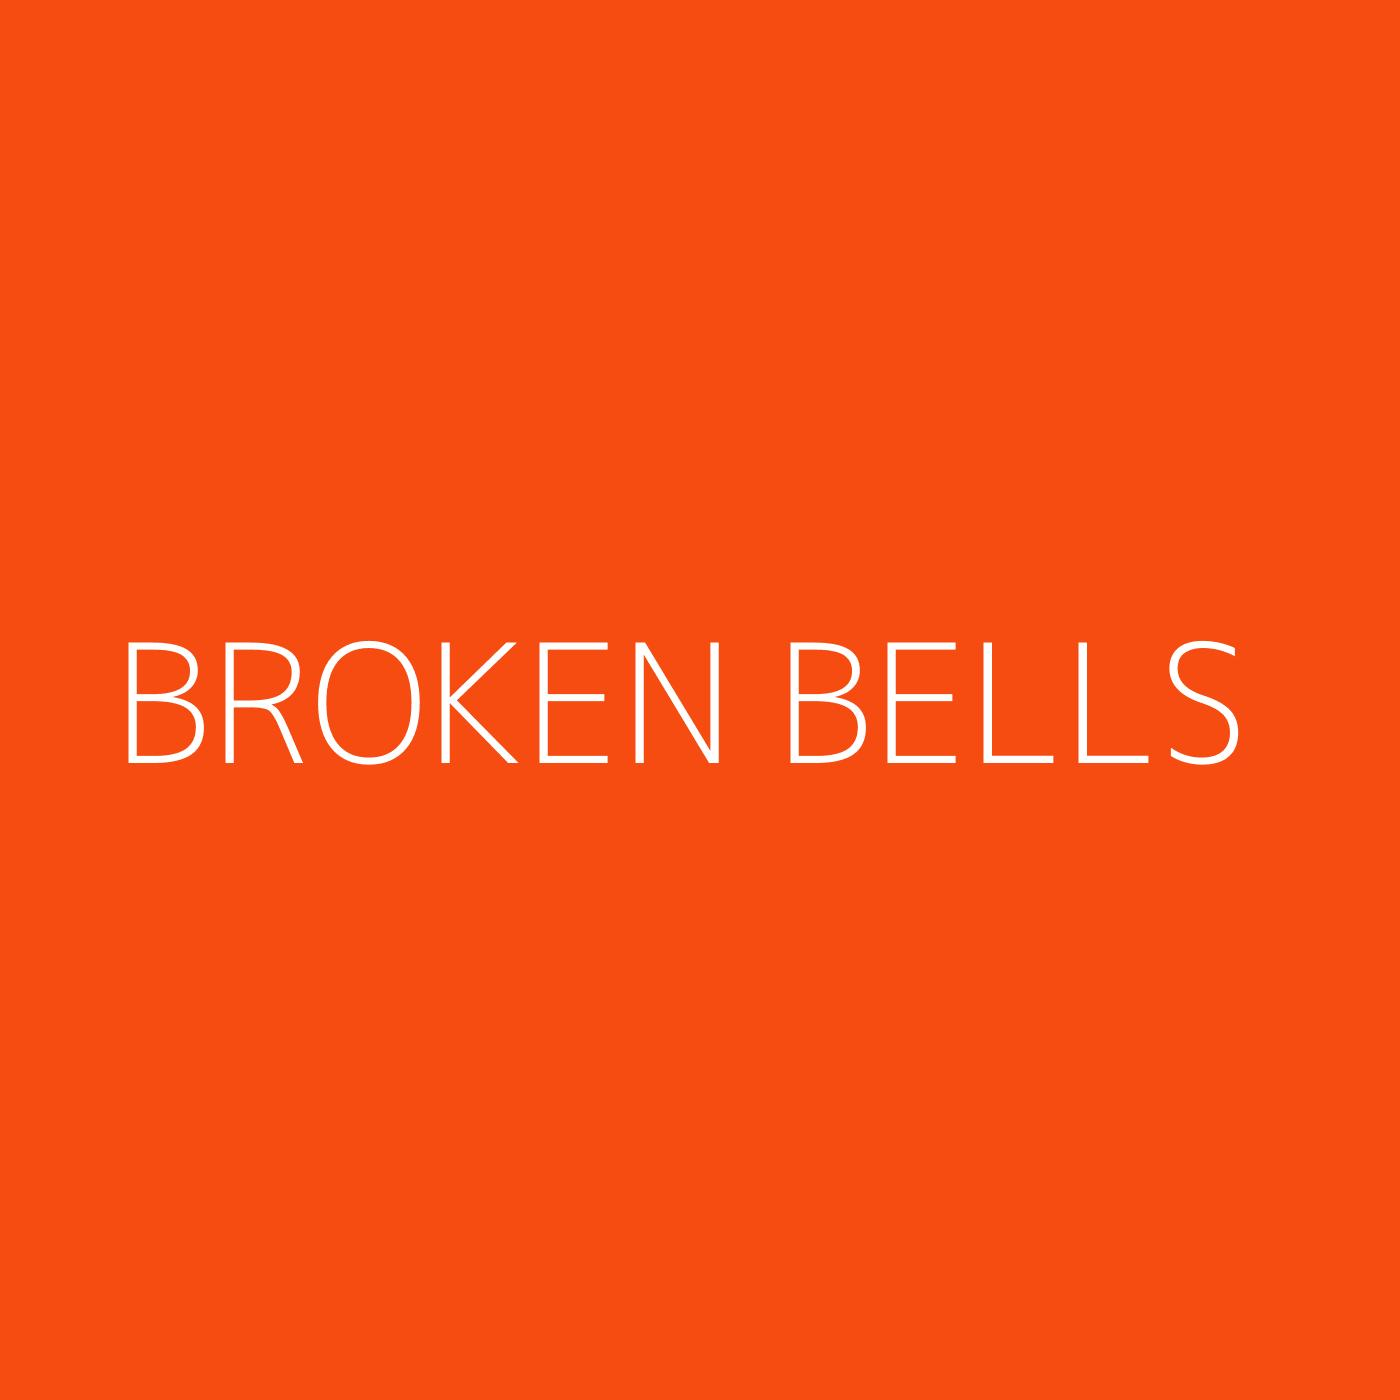 Broken Bells Playlist Artwork